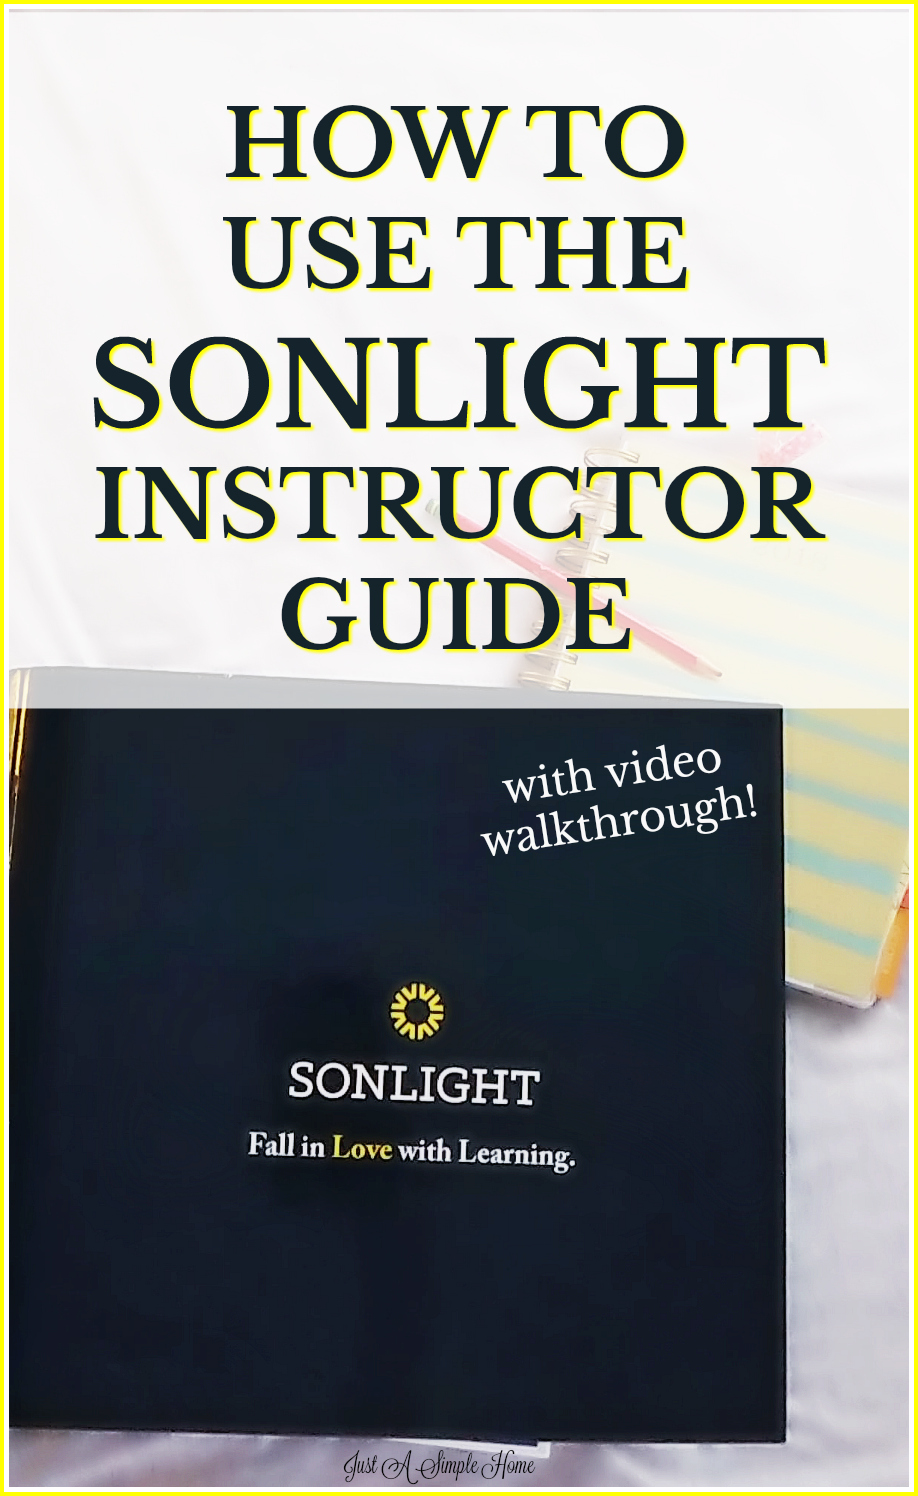 How To Use the SonLight Instructor Guide. Take a peek inside my Sonlight Instructor Guide for Level 100 and see how simple it is to teach your student with this guide! #SonLight #homeschool #homeschooltips #Sonlightlevel100